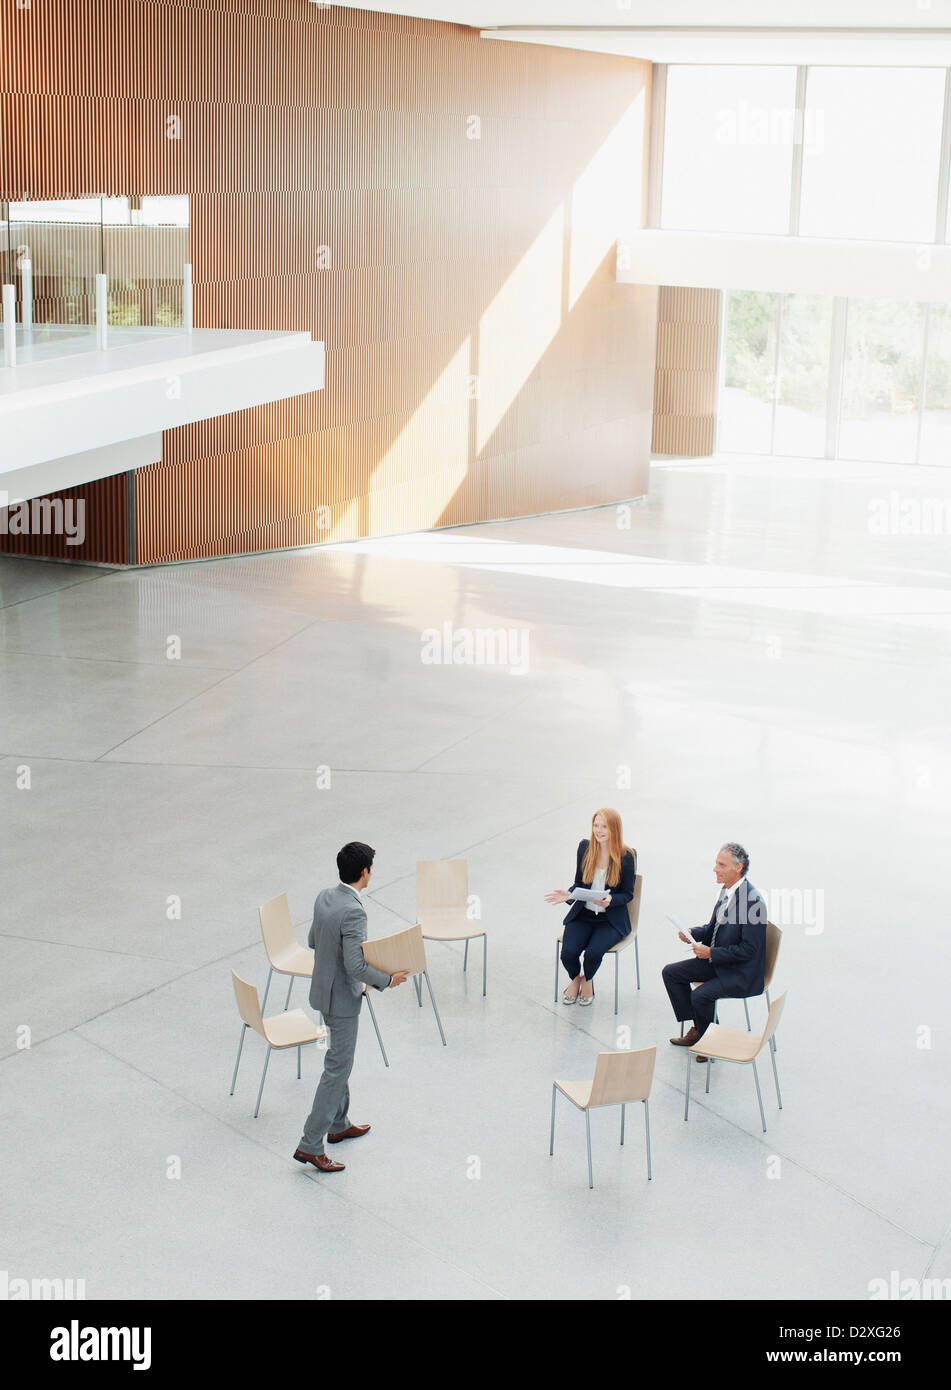 Businessman approaching co-workers at circle of chairs - Stock Image